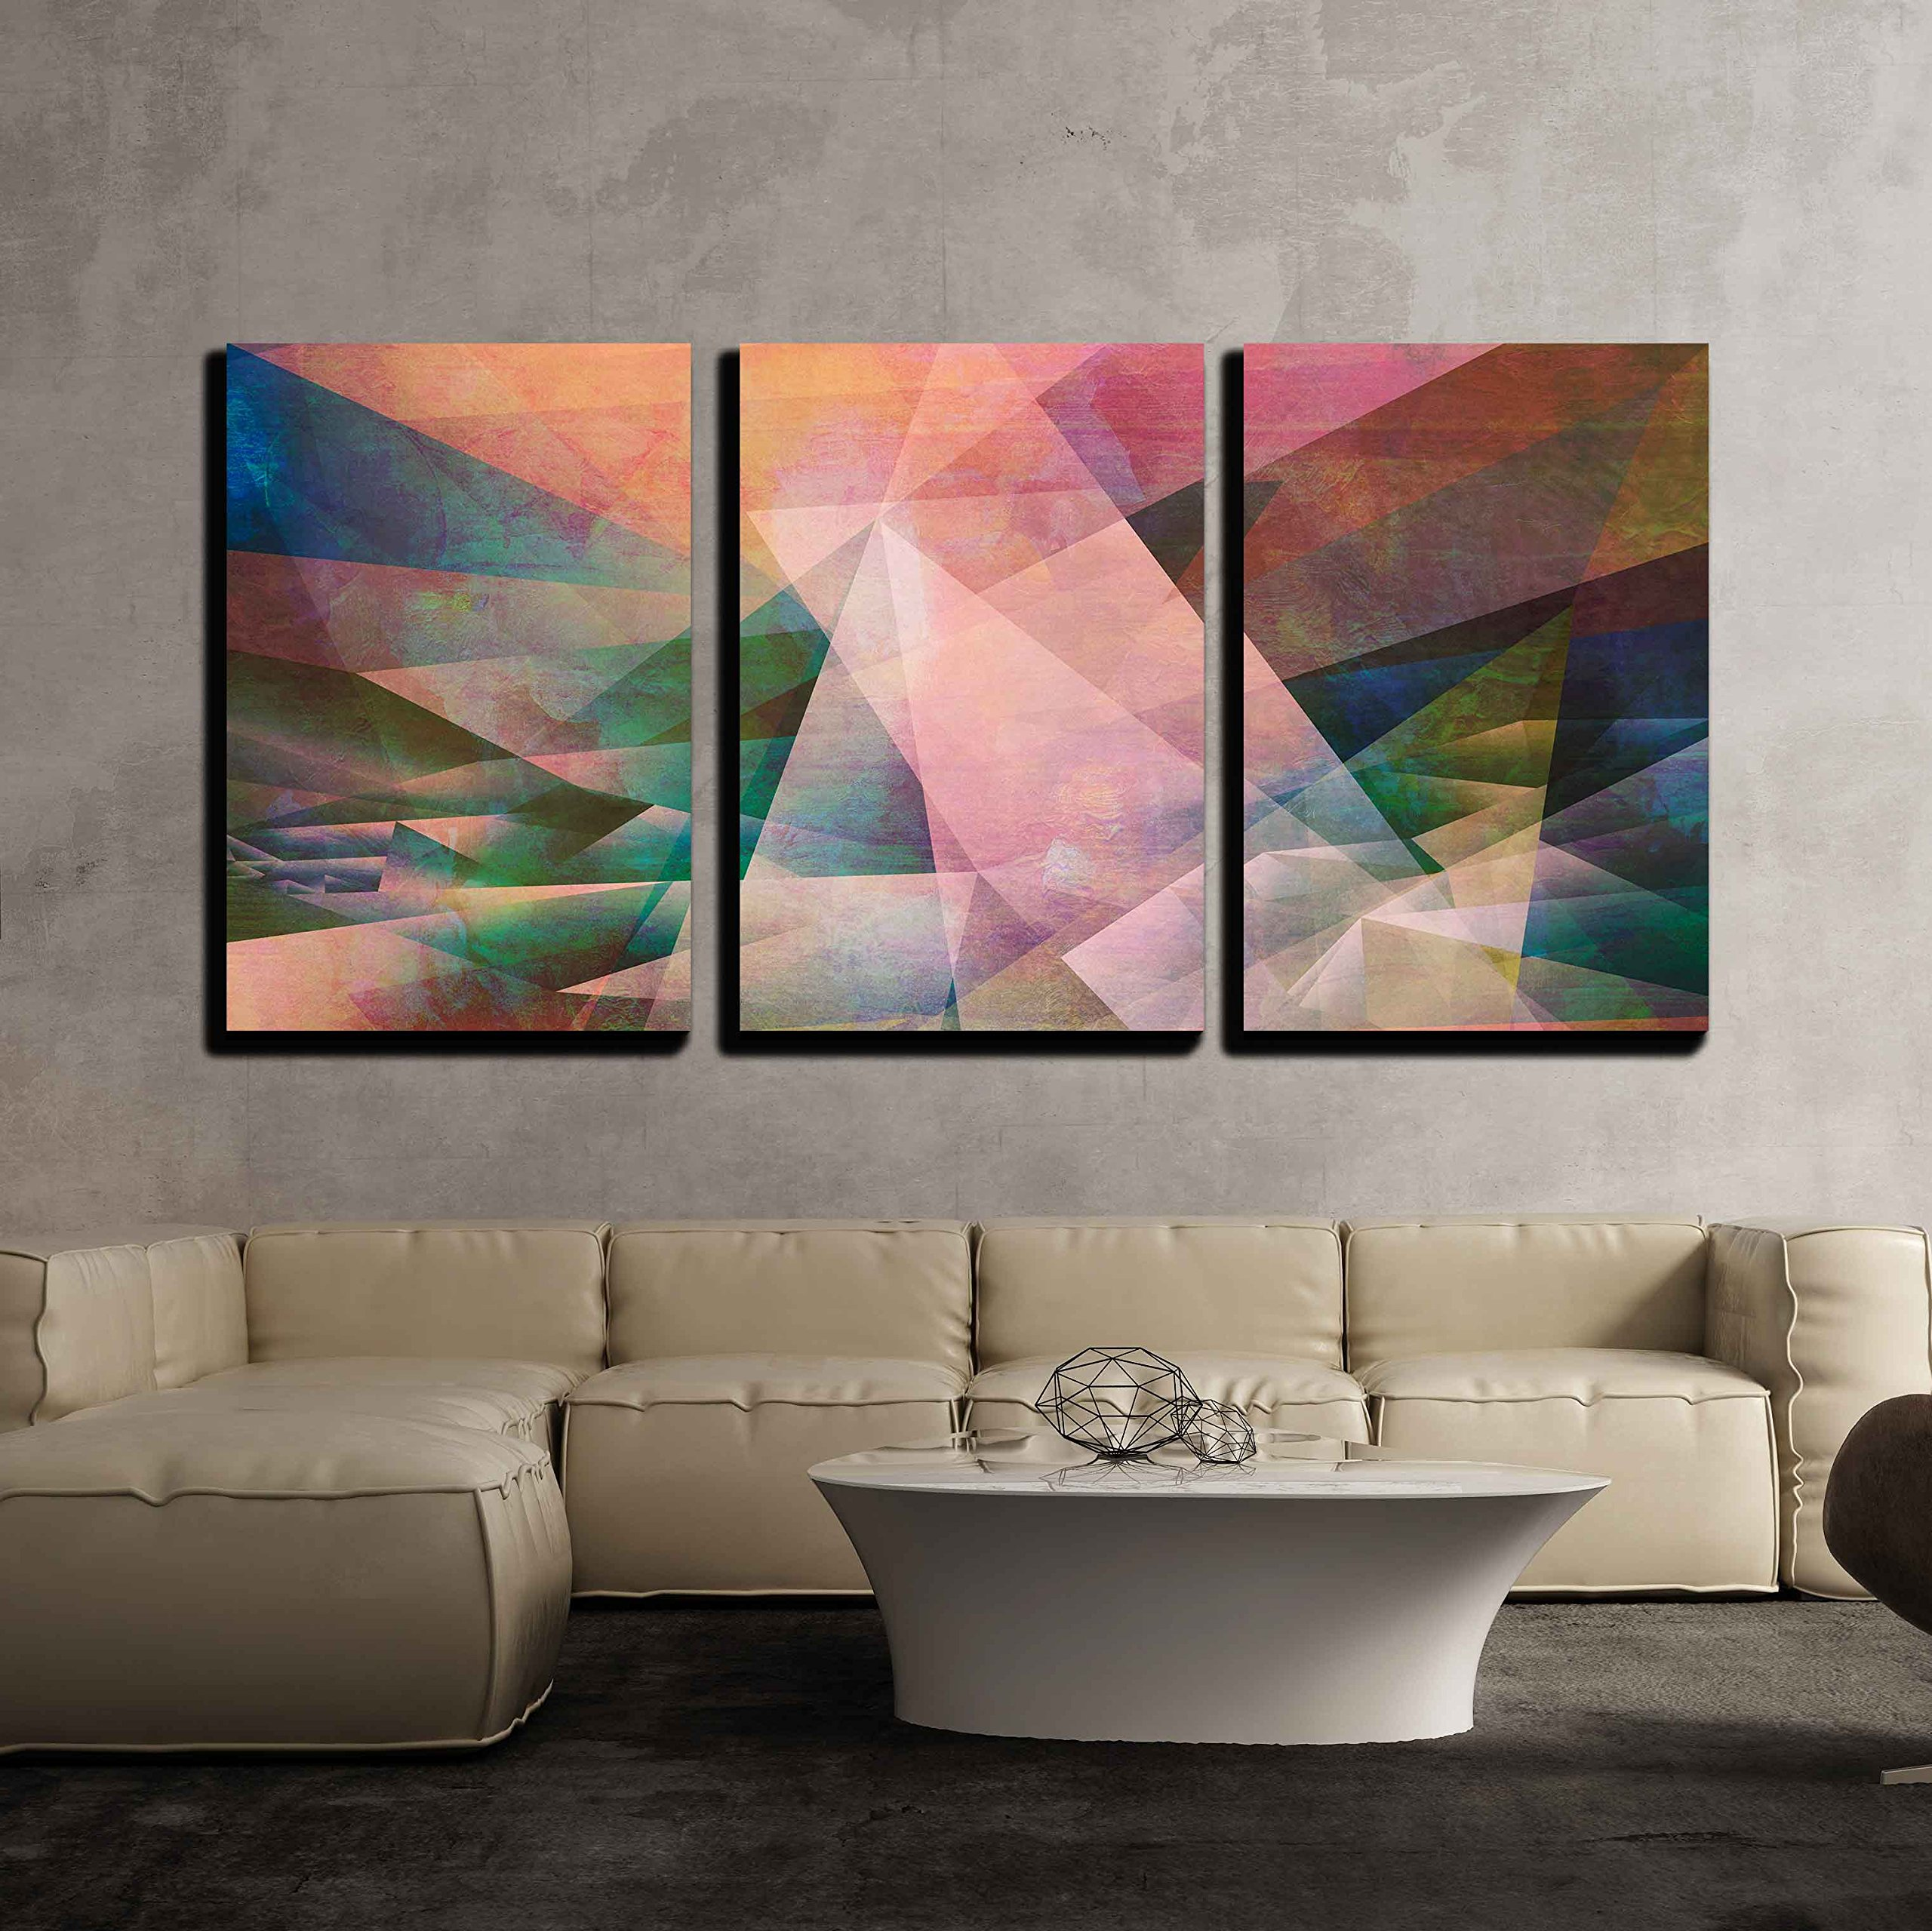 wall26 - 3 Piece Canvas Wall Art - abstract mixed media - created by combining different layers of paint and textures - Modern Home Decor Stretched and Framed Ready to Hang - 16''x24''x3 Panels